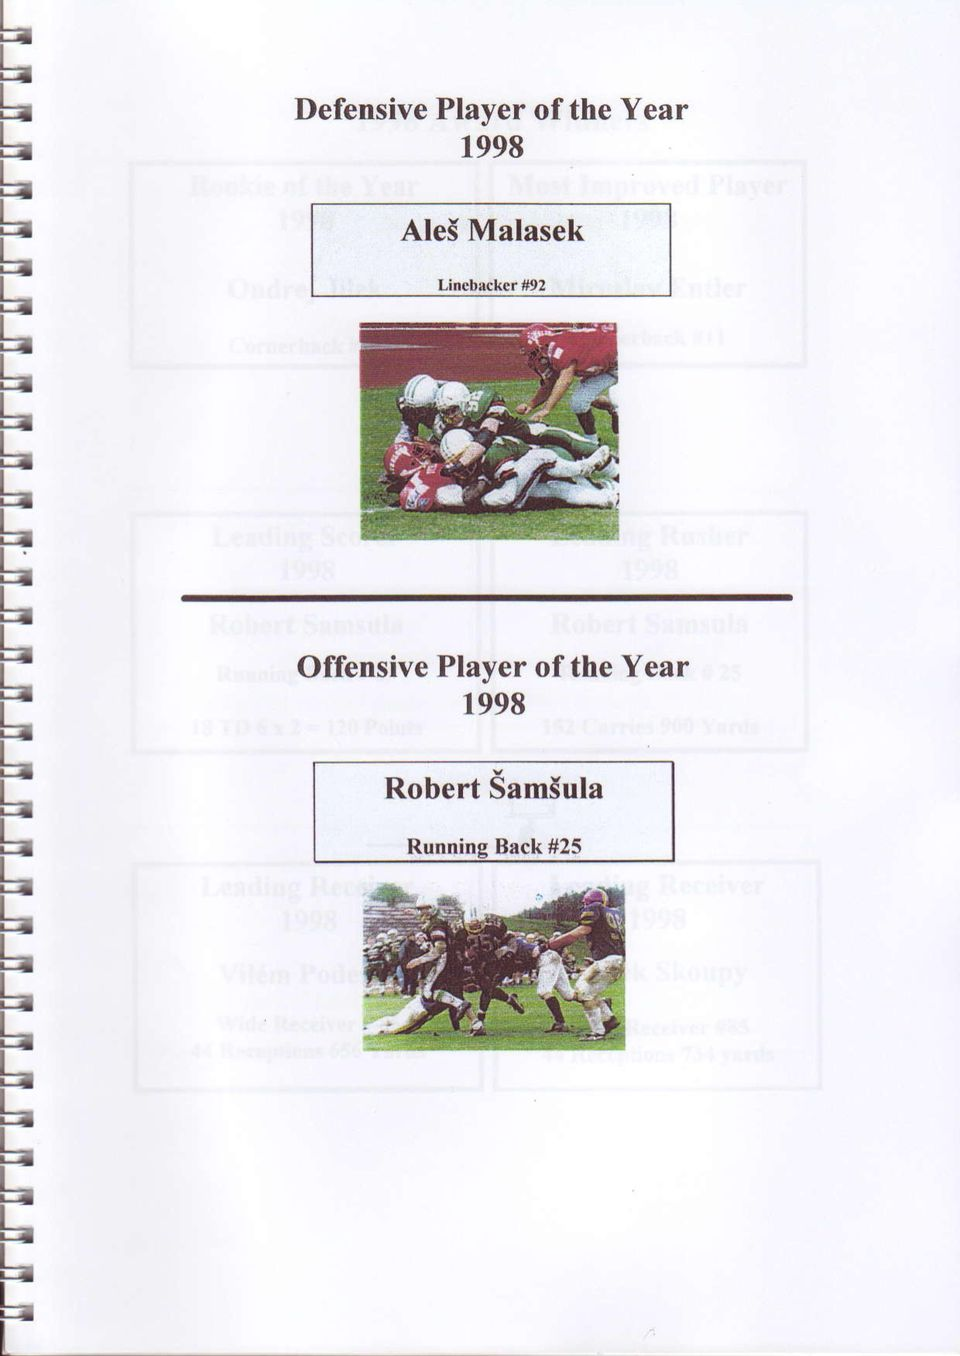 Offensive Player of the Year